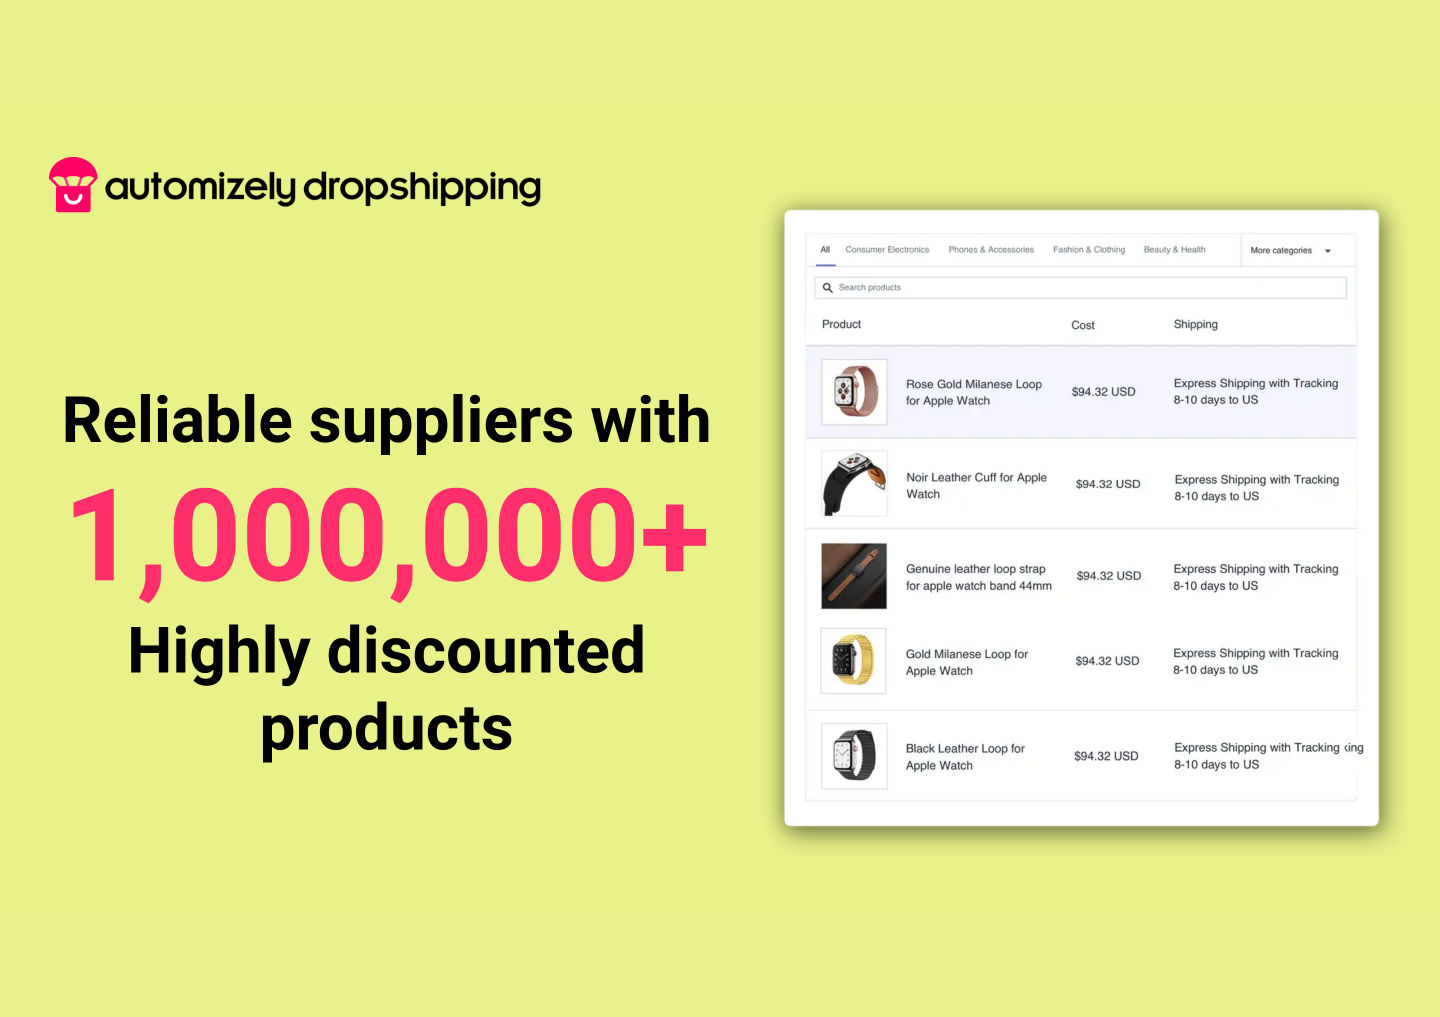 Easily find and import top-quality dropshipping products from trusted suppliers worldwide.